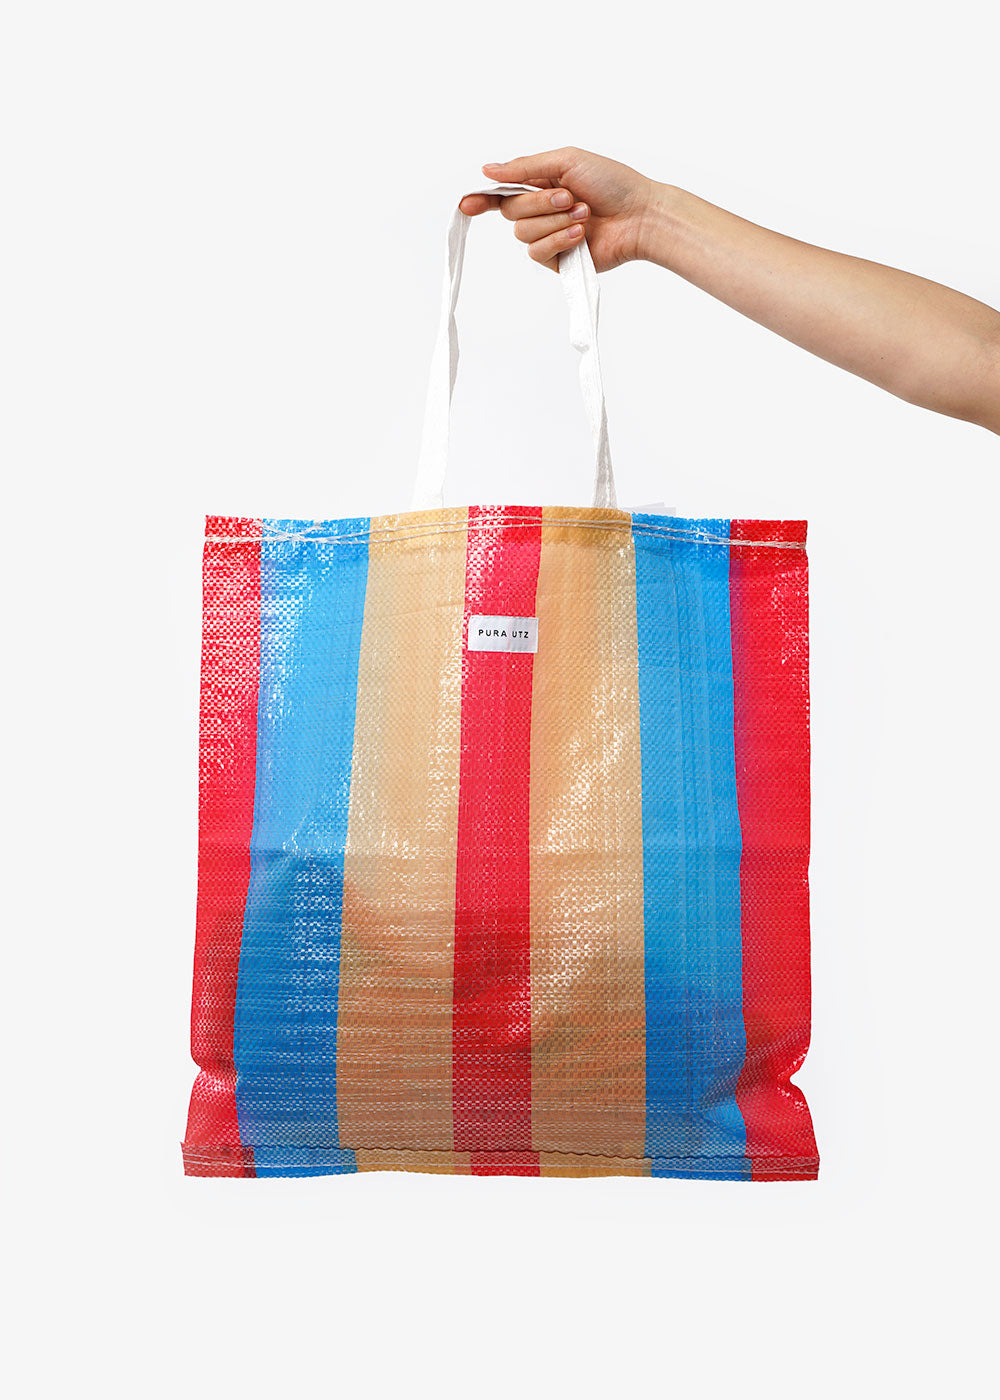 Pura Utz Mixed Colour Large Plastic Tote — Shop sustainable fashion and slow fashion at New Classics Studios